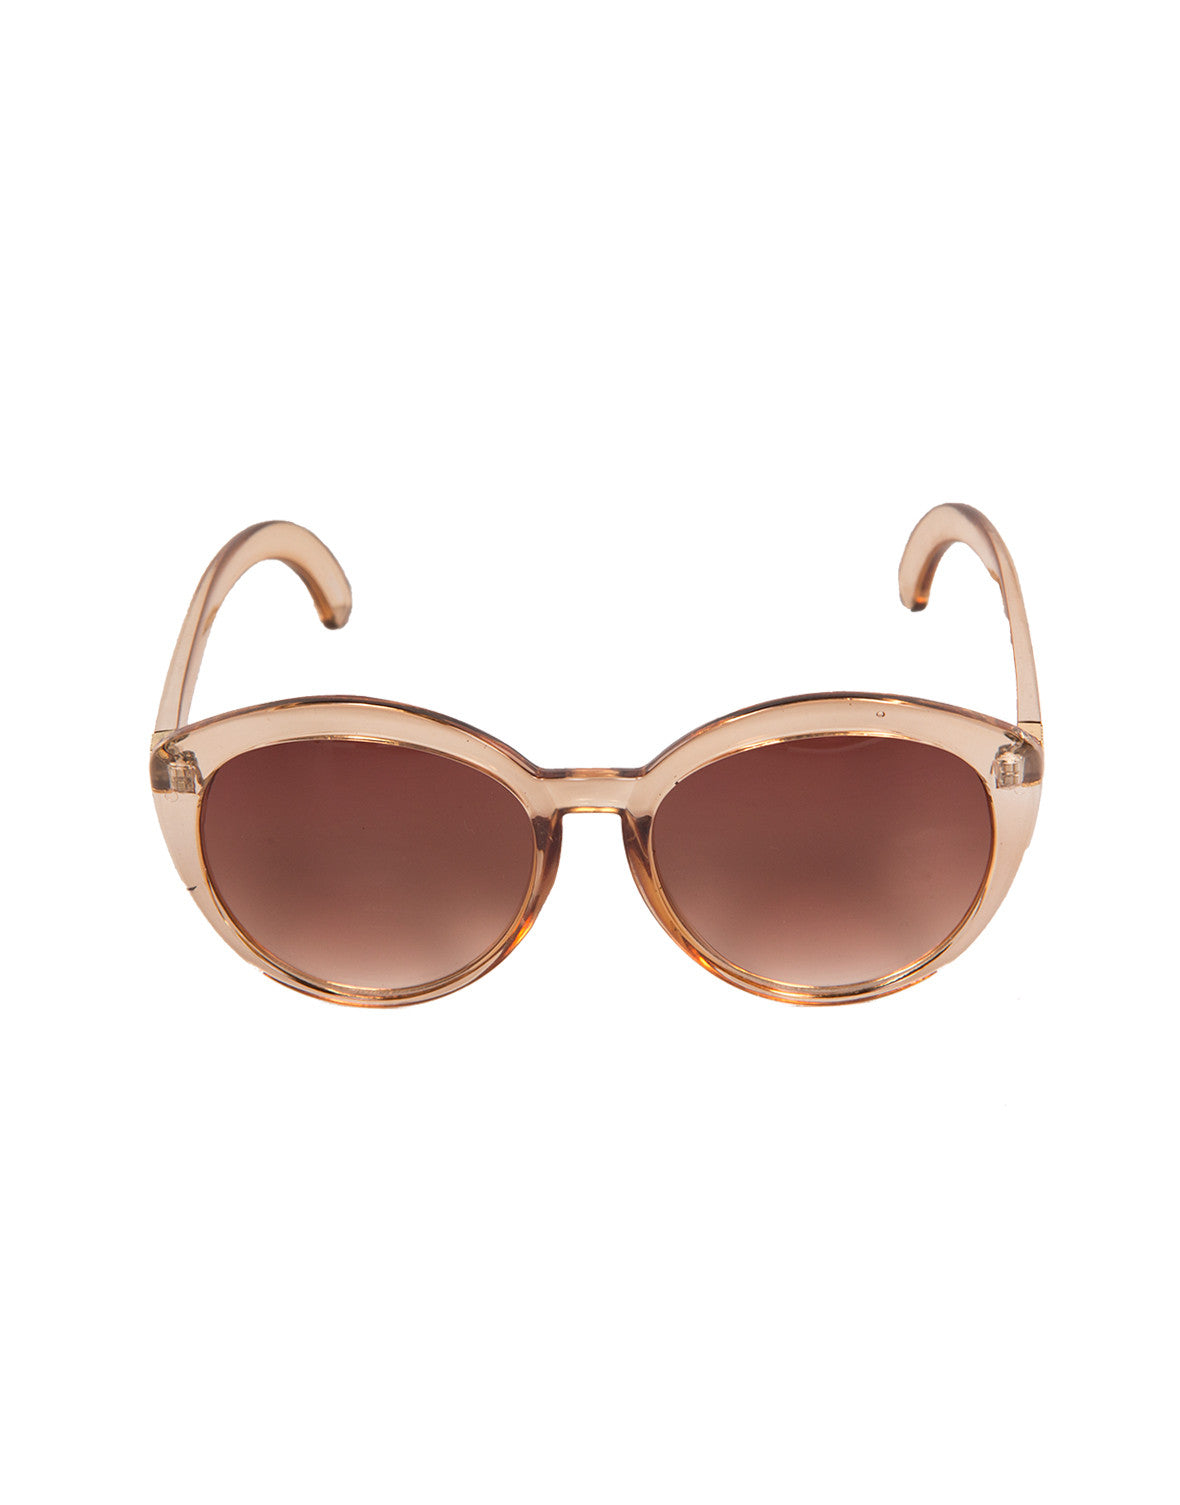 Oversized Round Cat Eye Sunglasses (+ Colors) - Tortoise